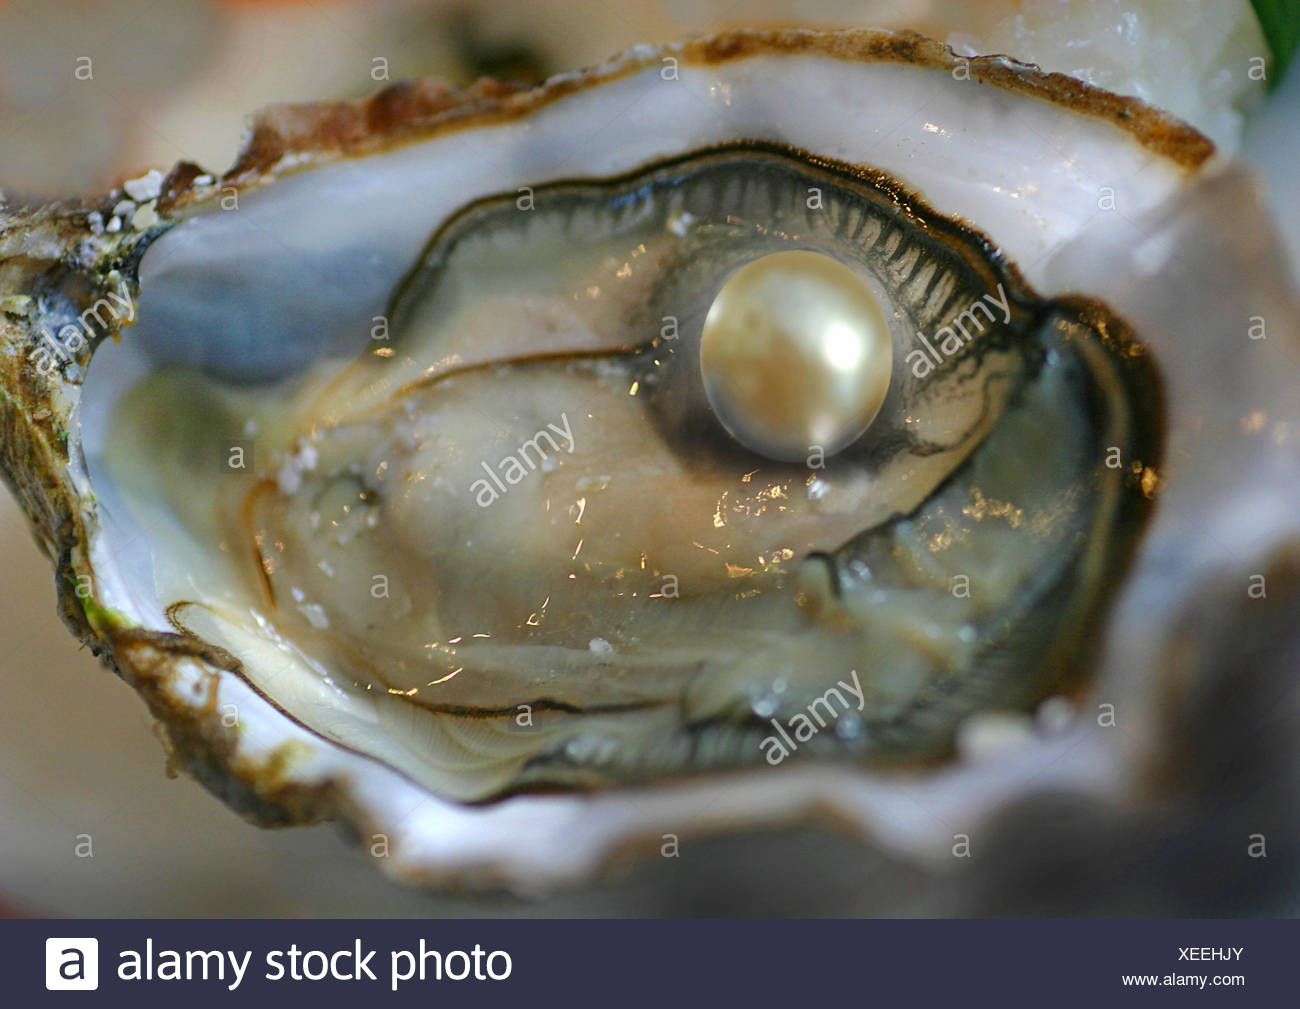 Pacific oyster, giant Pacific oyster, Japanese oyster (Crassostrea gigas, Crassostrea pacifica), open with pearl - Stock Image